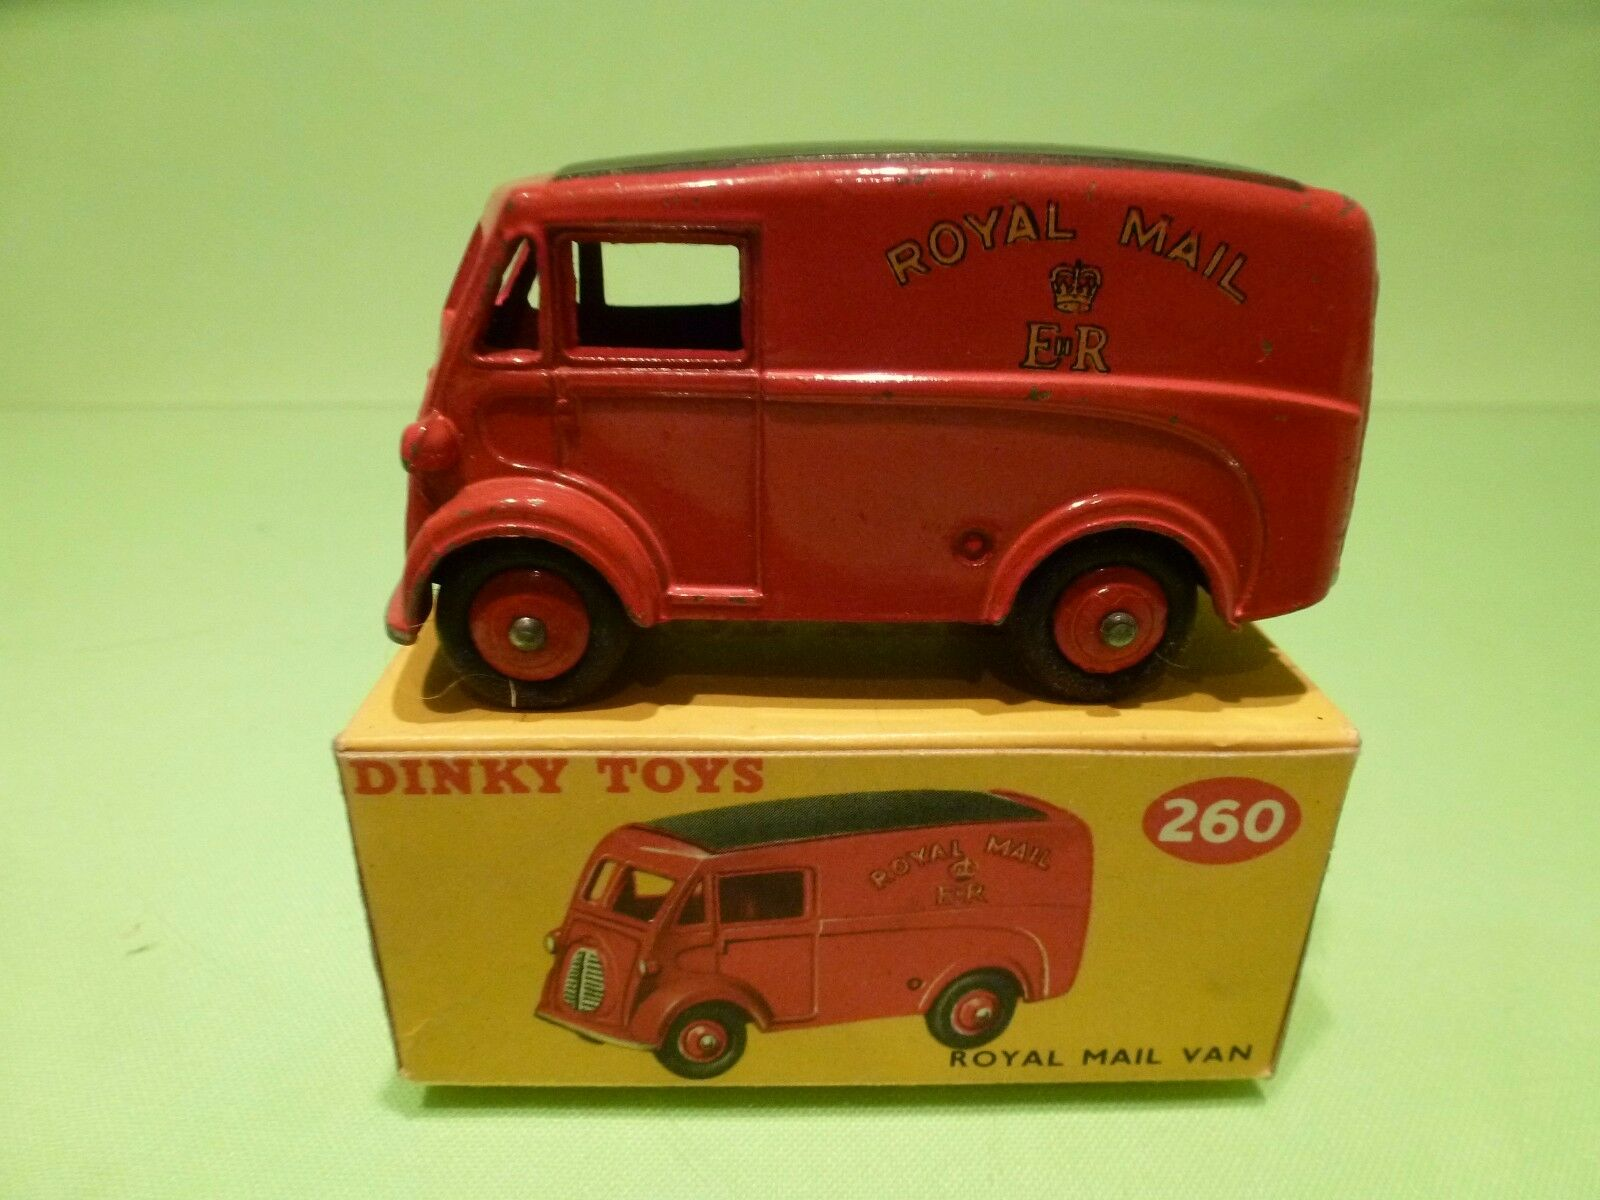 DINKY TOYS 260 ROYAL MAIL VAN  - rosso - EXCELLENT IN BOX